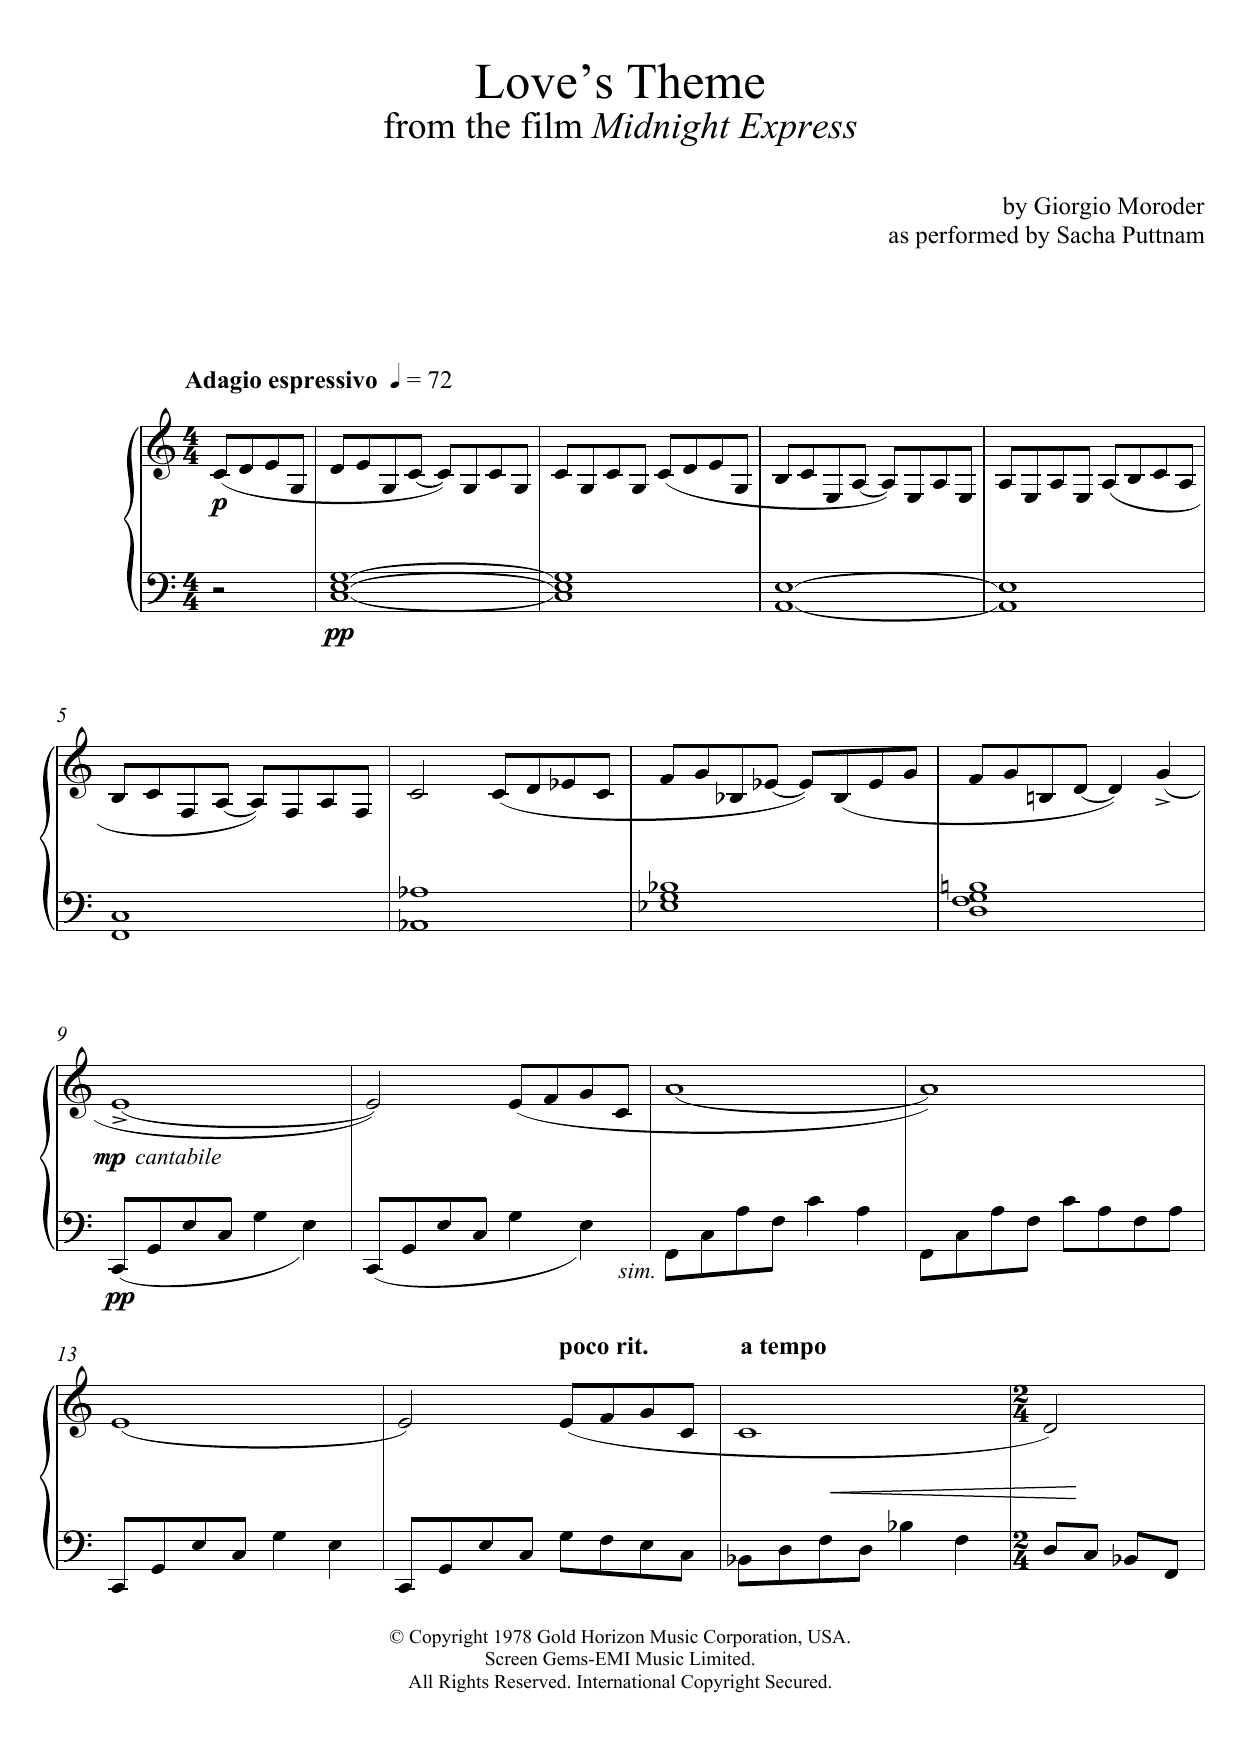 Giorgio Moroder Love's Theme (from Midnight Express) (as performed by Sacha Puttnam) sheet music preview music notes and score for Piano including 4 page(s)